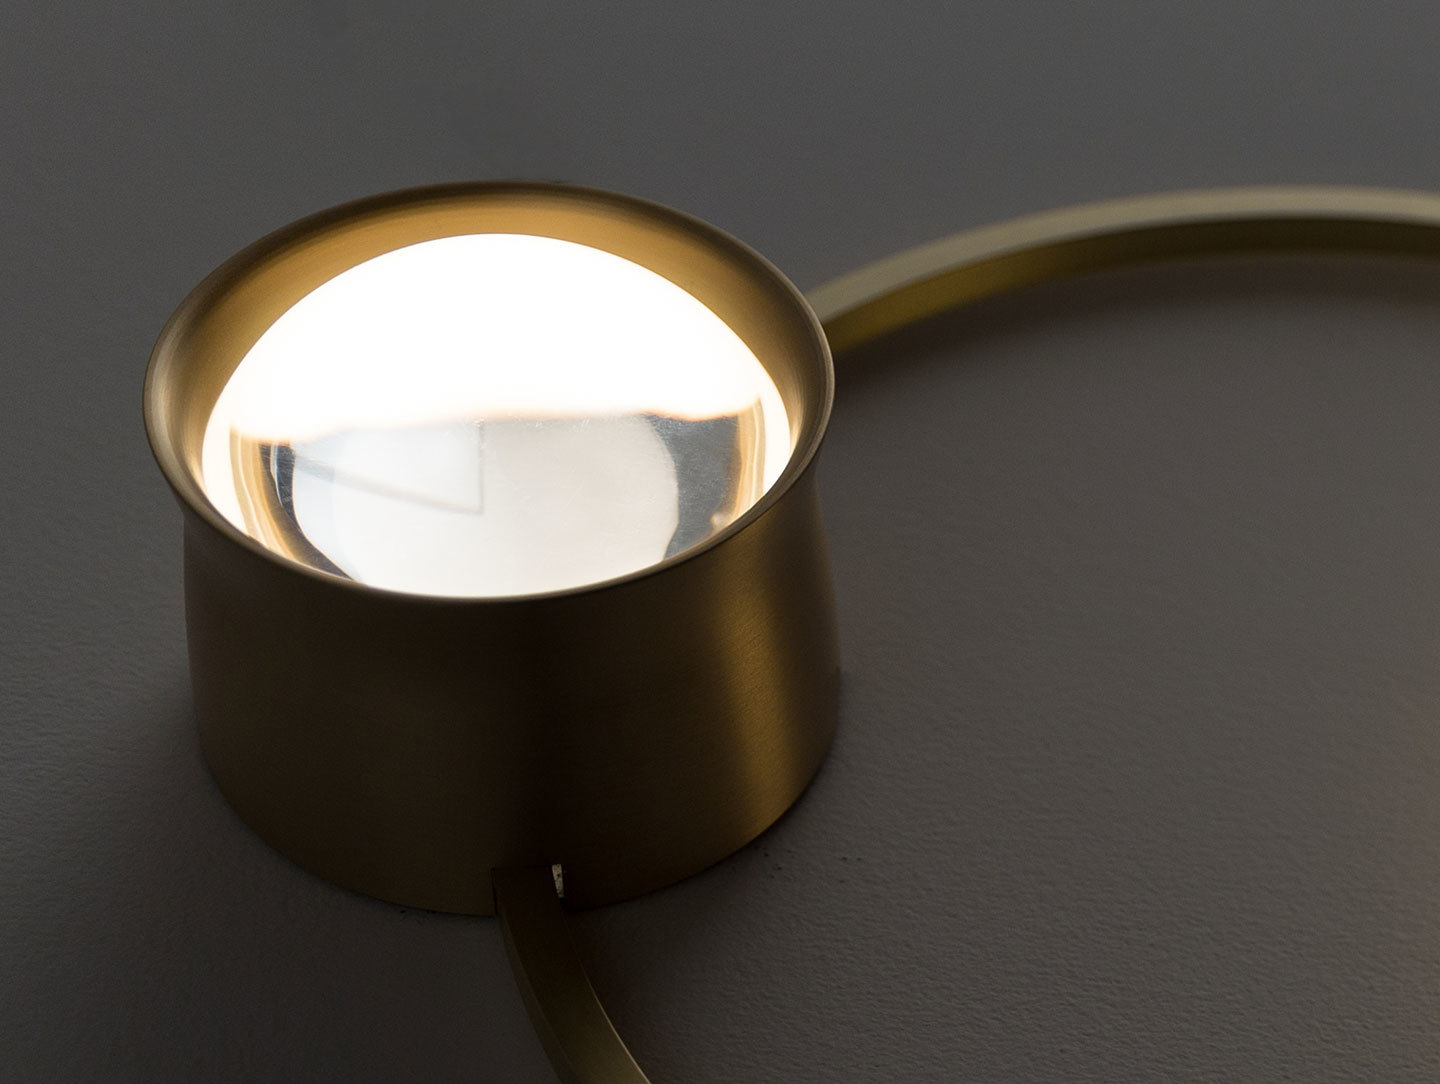 Giopato And Coombes Gioielli Wall Light Lens Detail